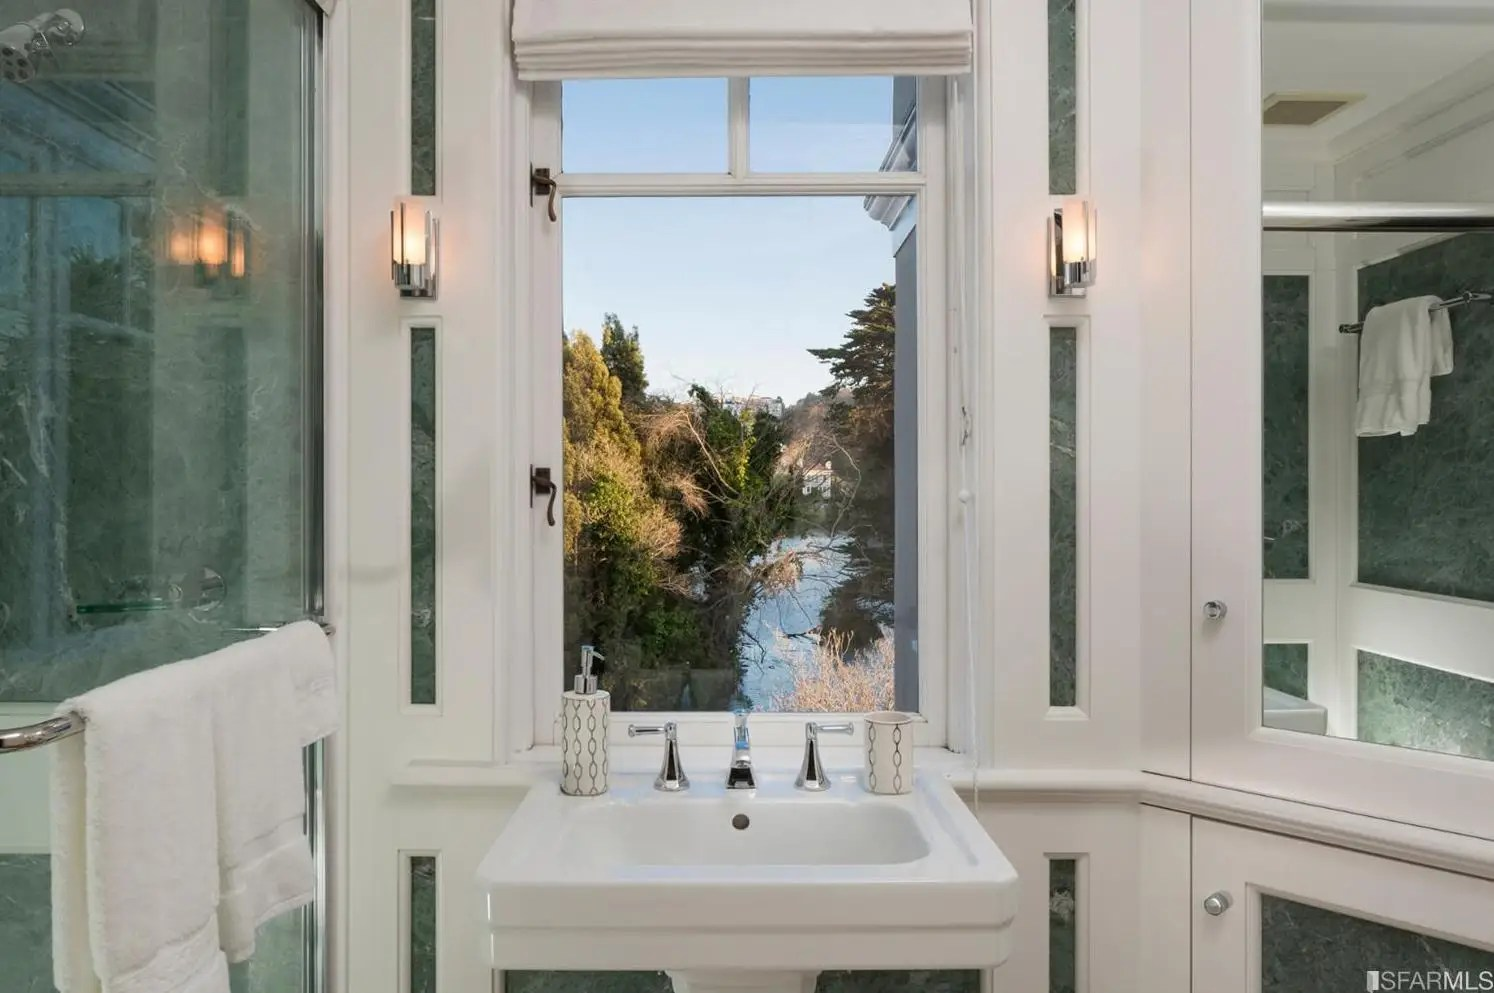 Even this bathroom has a direct view of the outdoors.